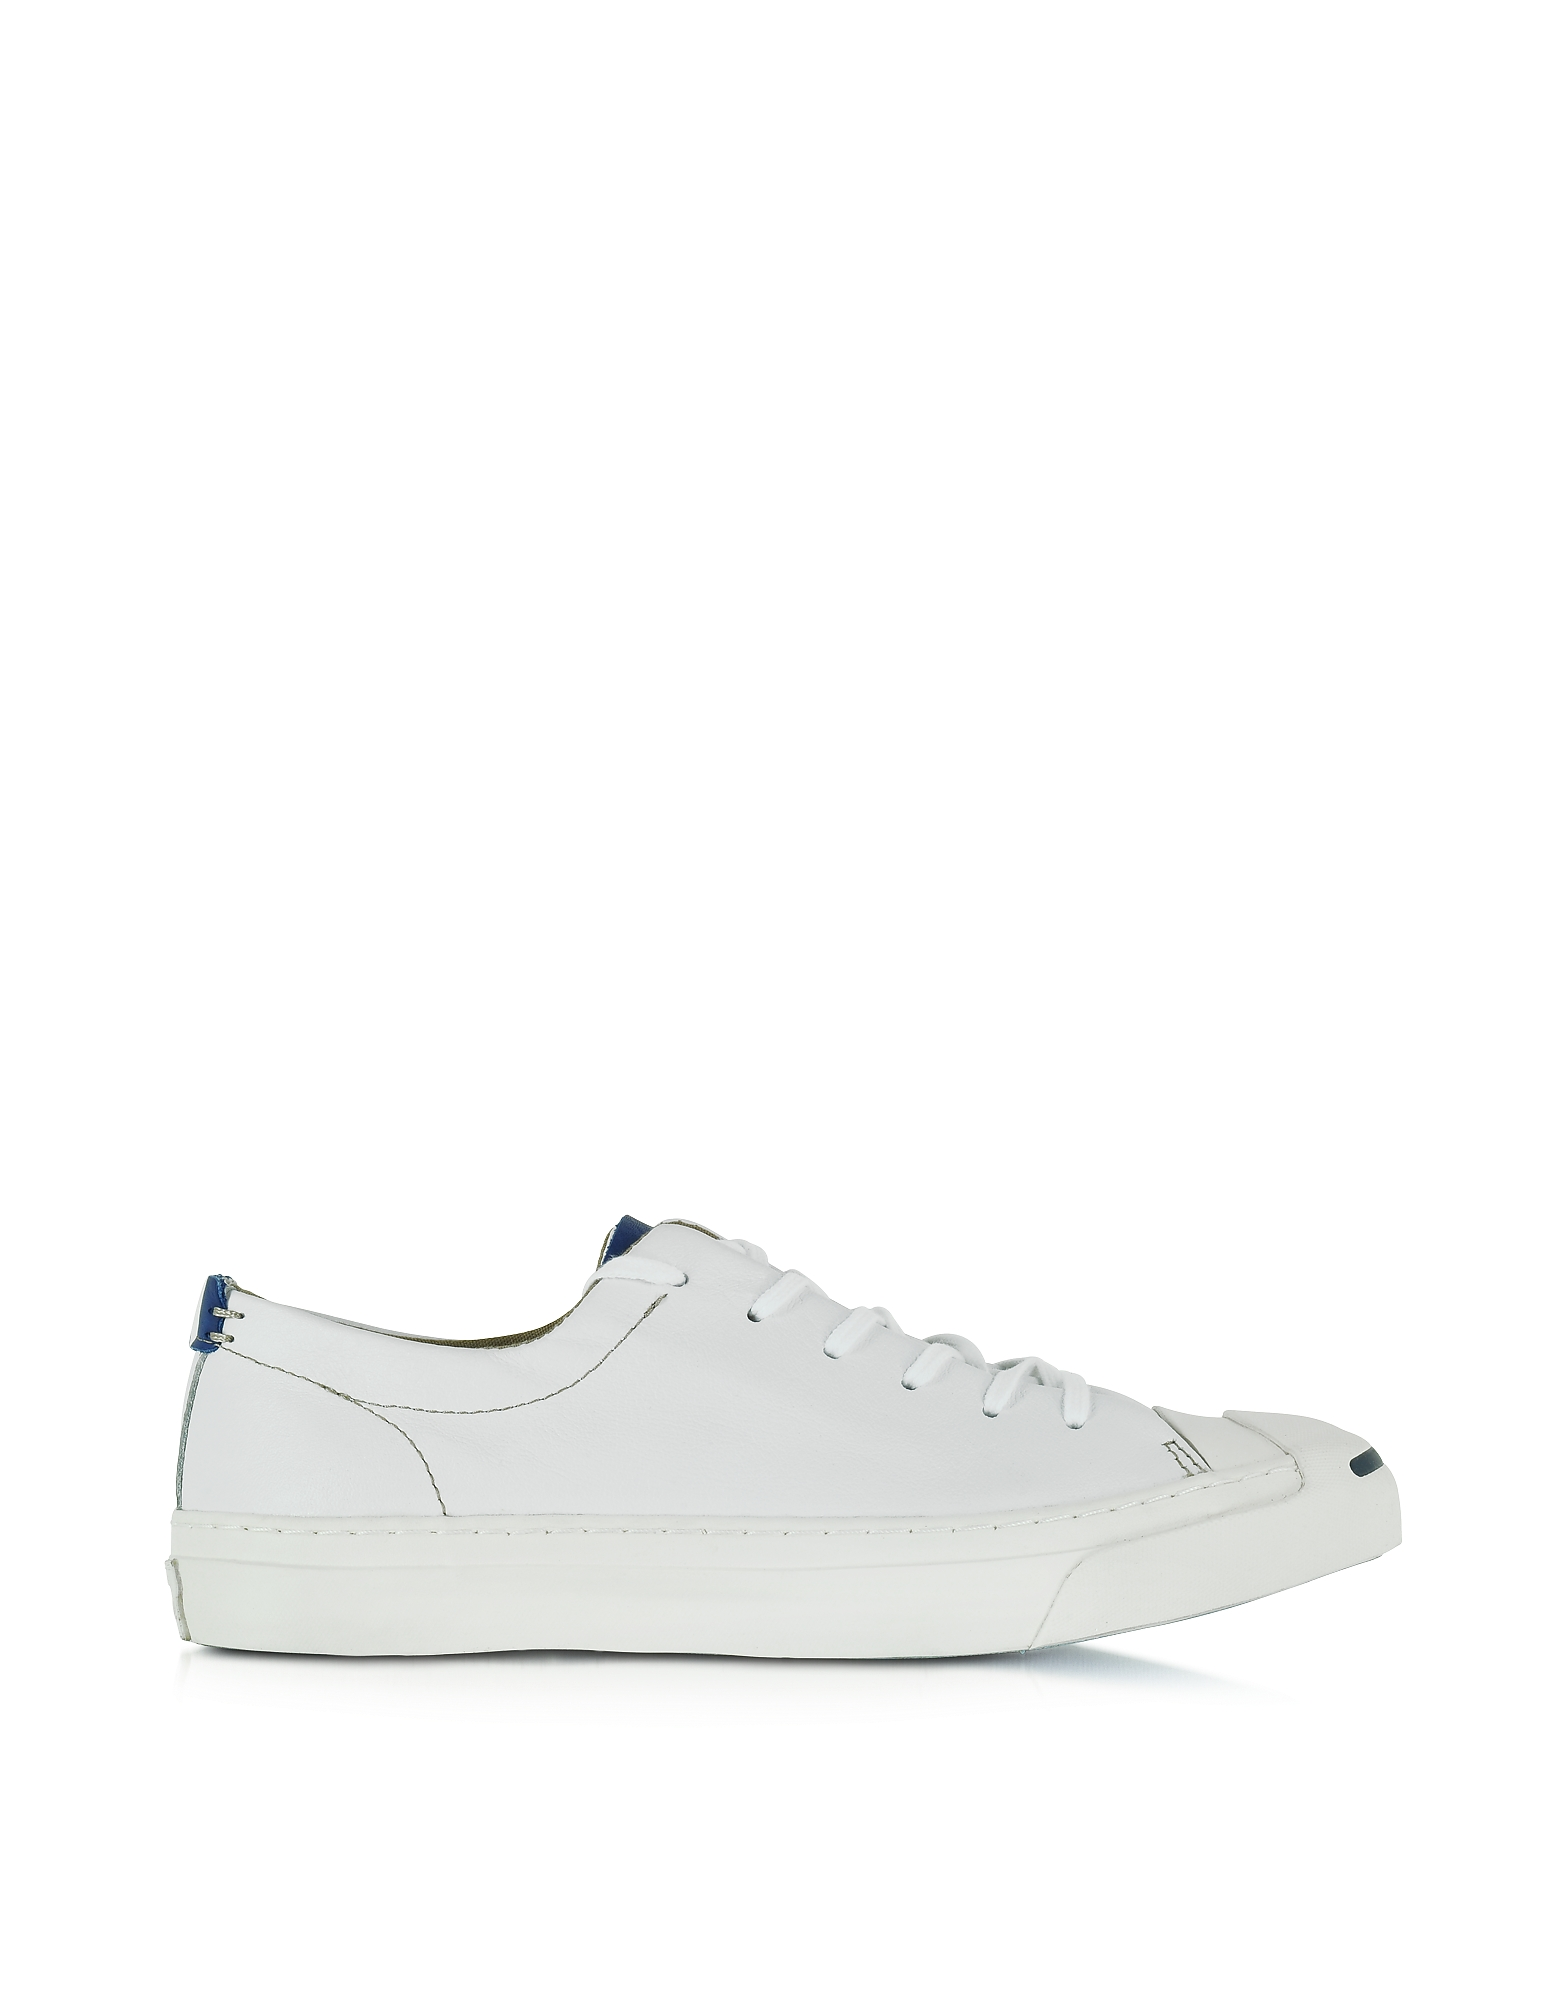 Converse Limited Edition Jack Purcell LTT Ox - Белые Мужские Кроссовки